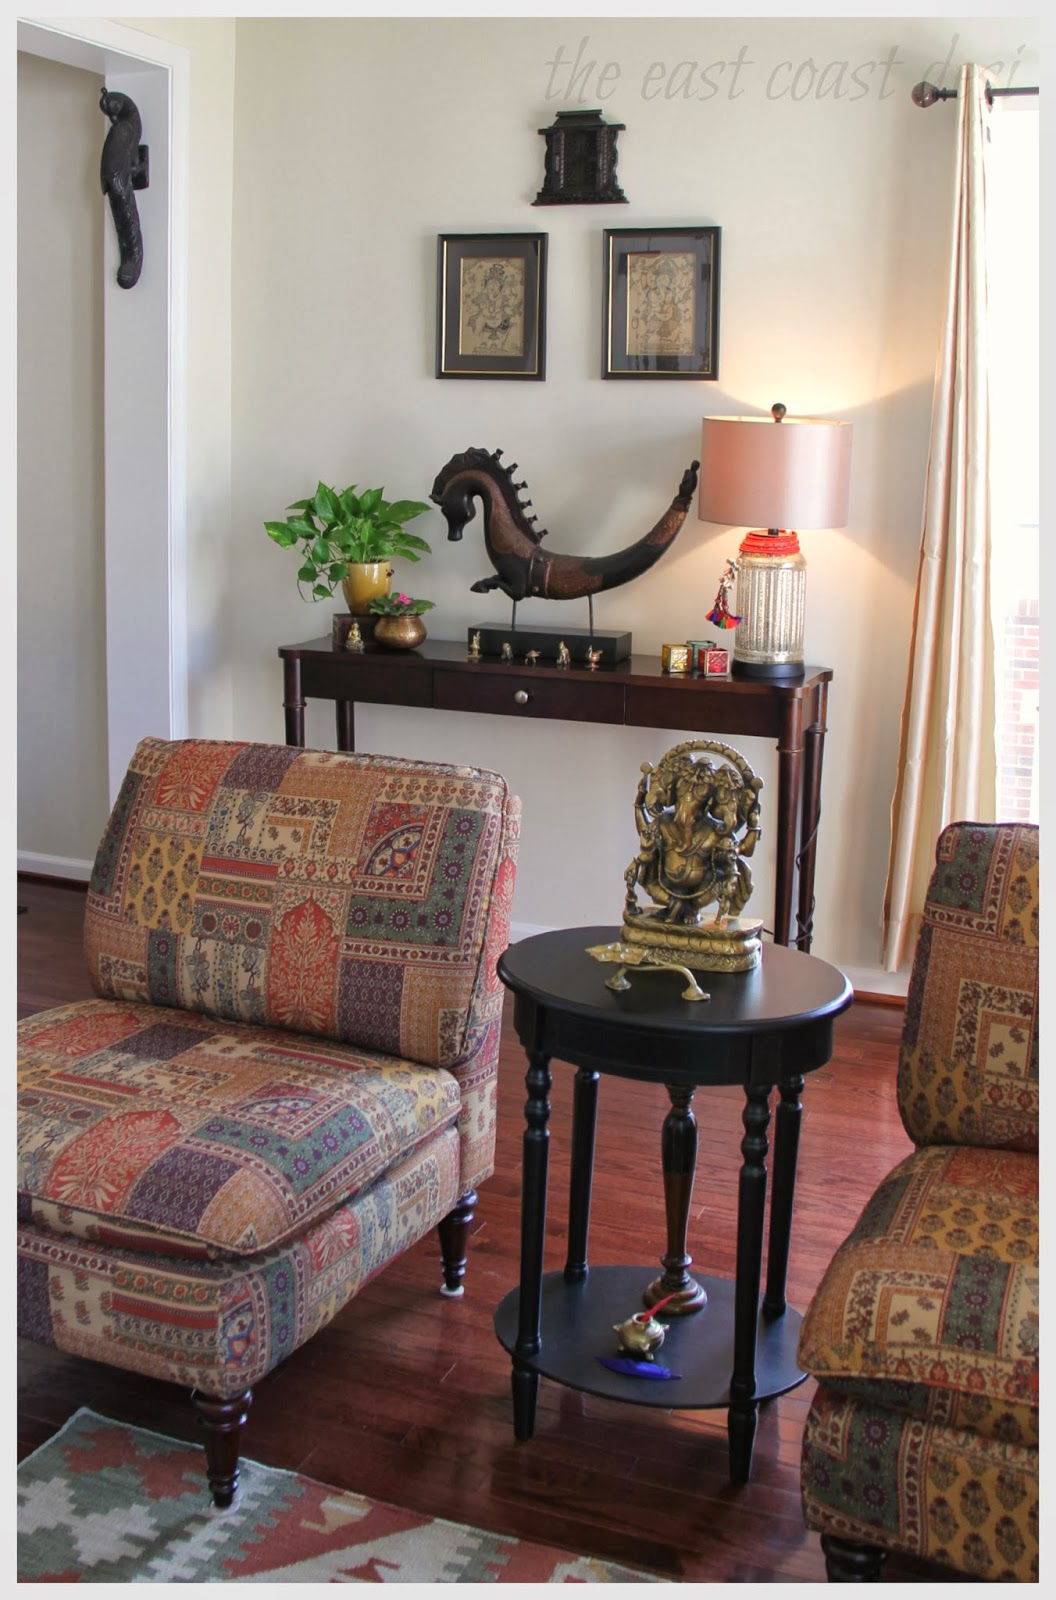 The east coast desi my living room a reflection of india for House decoration items online